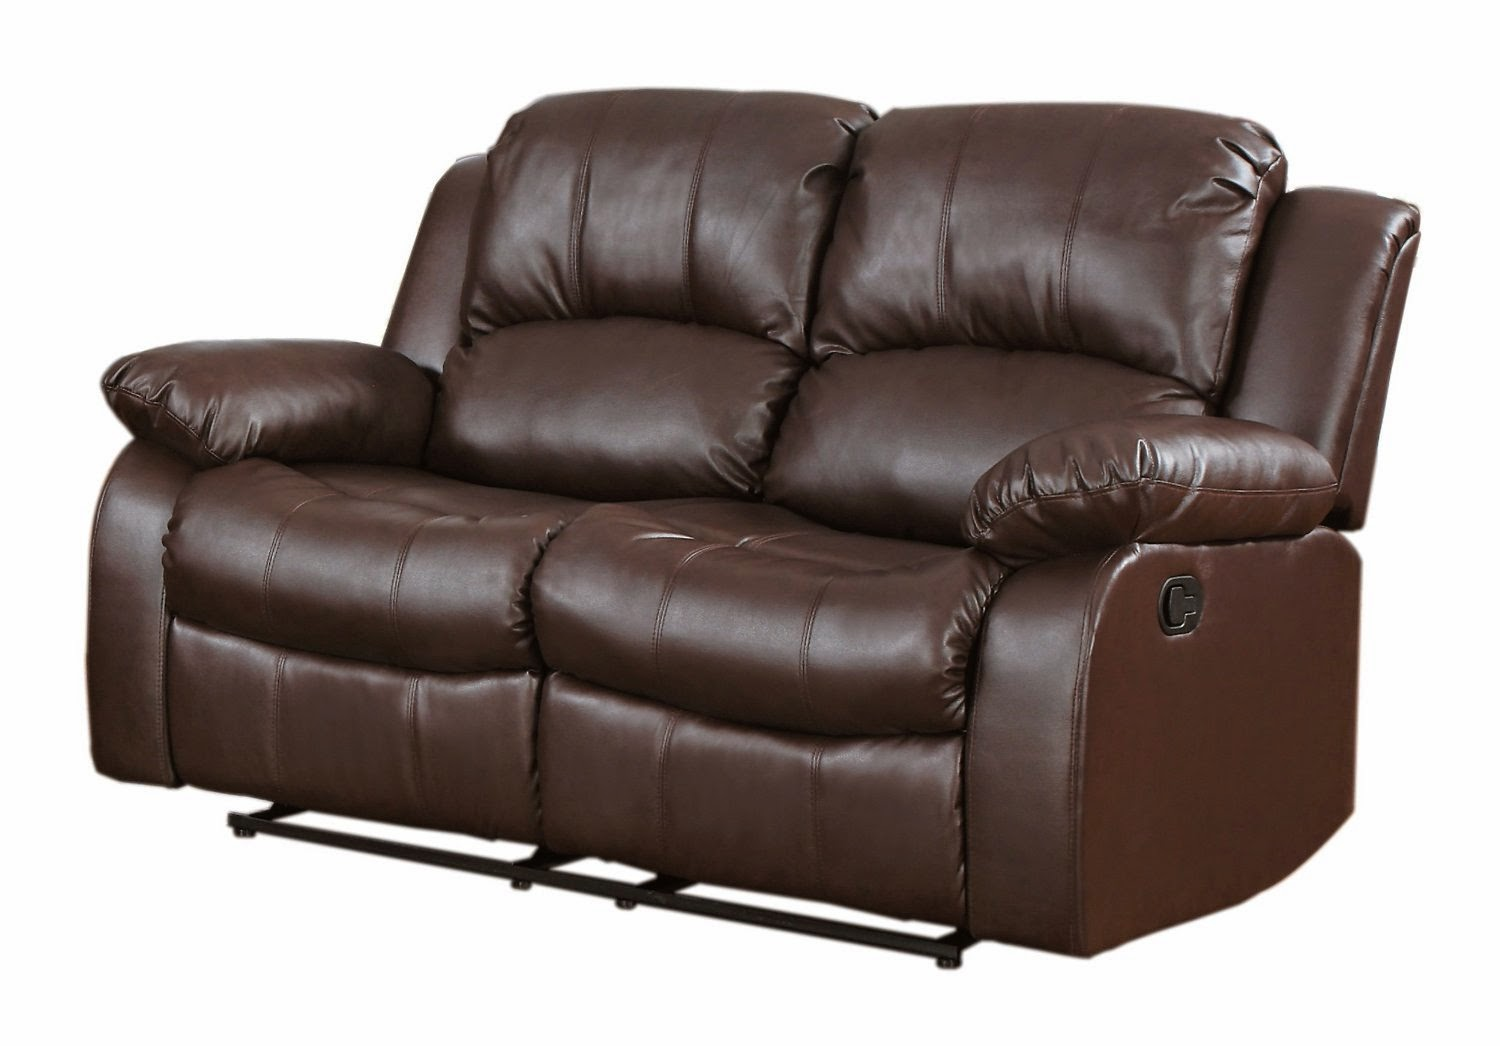 Also Available Sofa All Leather Upholstery In North Shore Leather - French